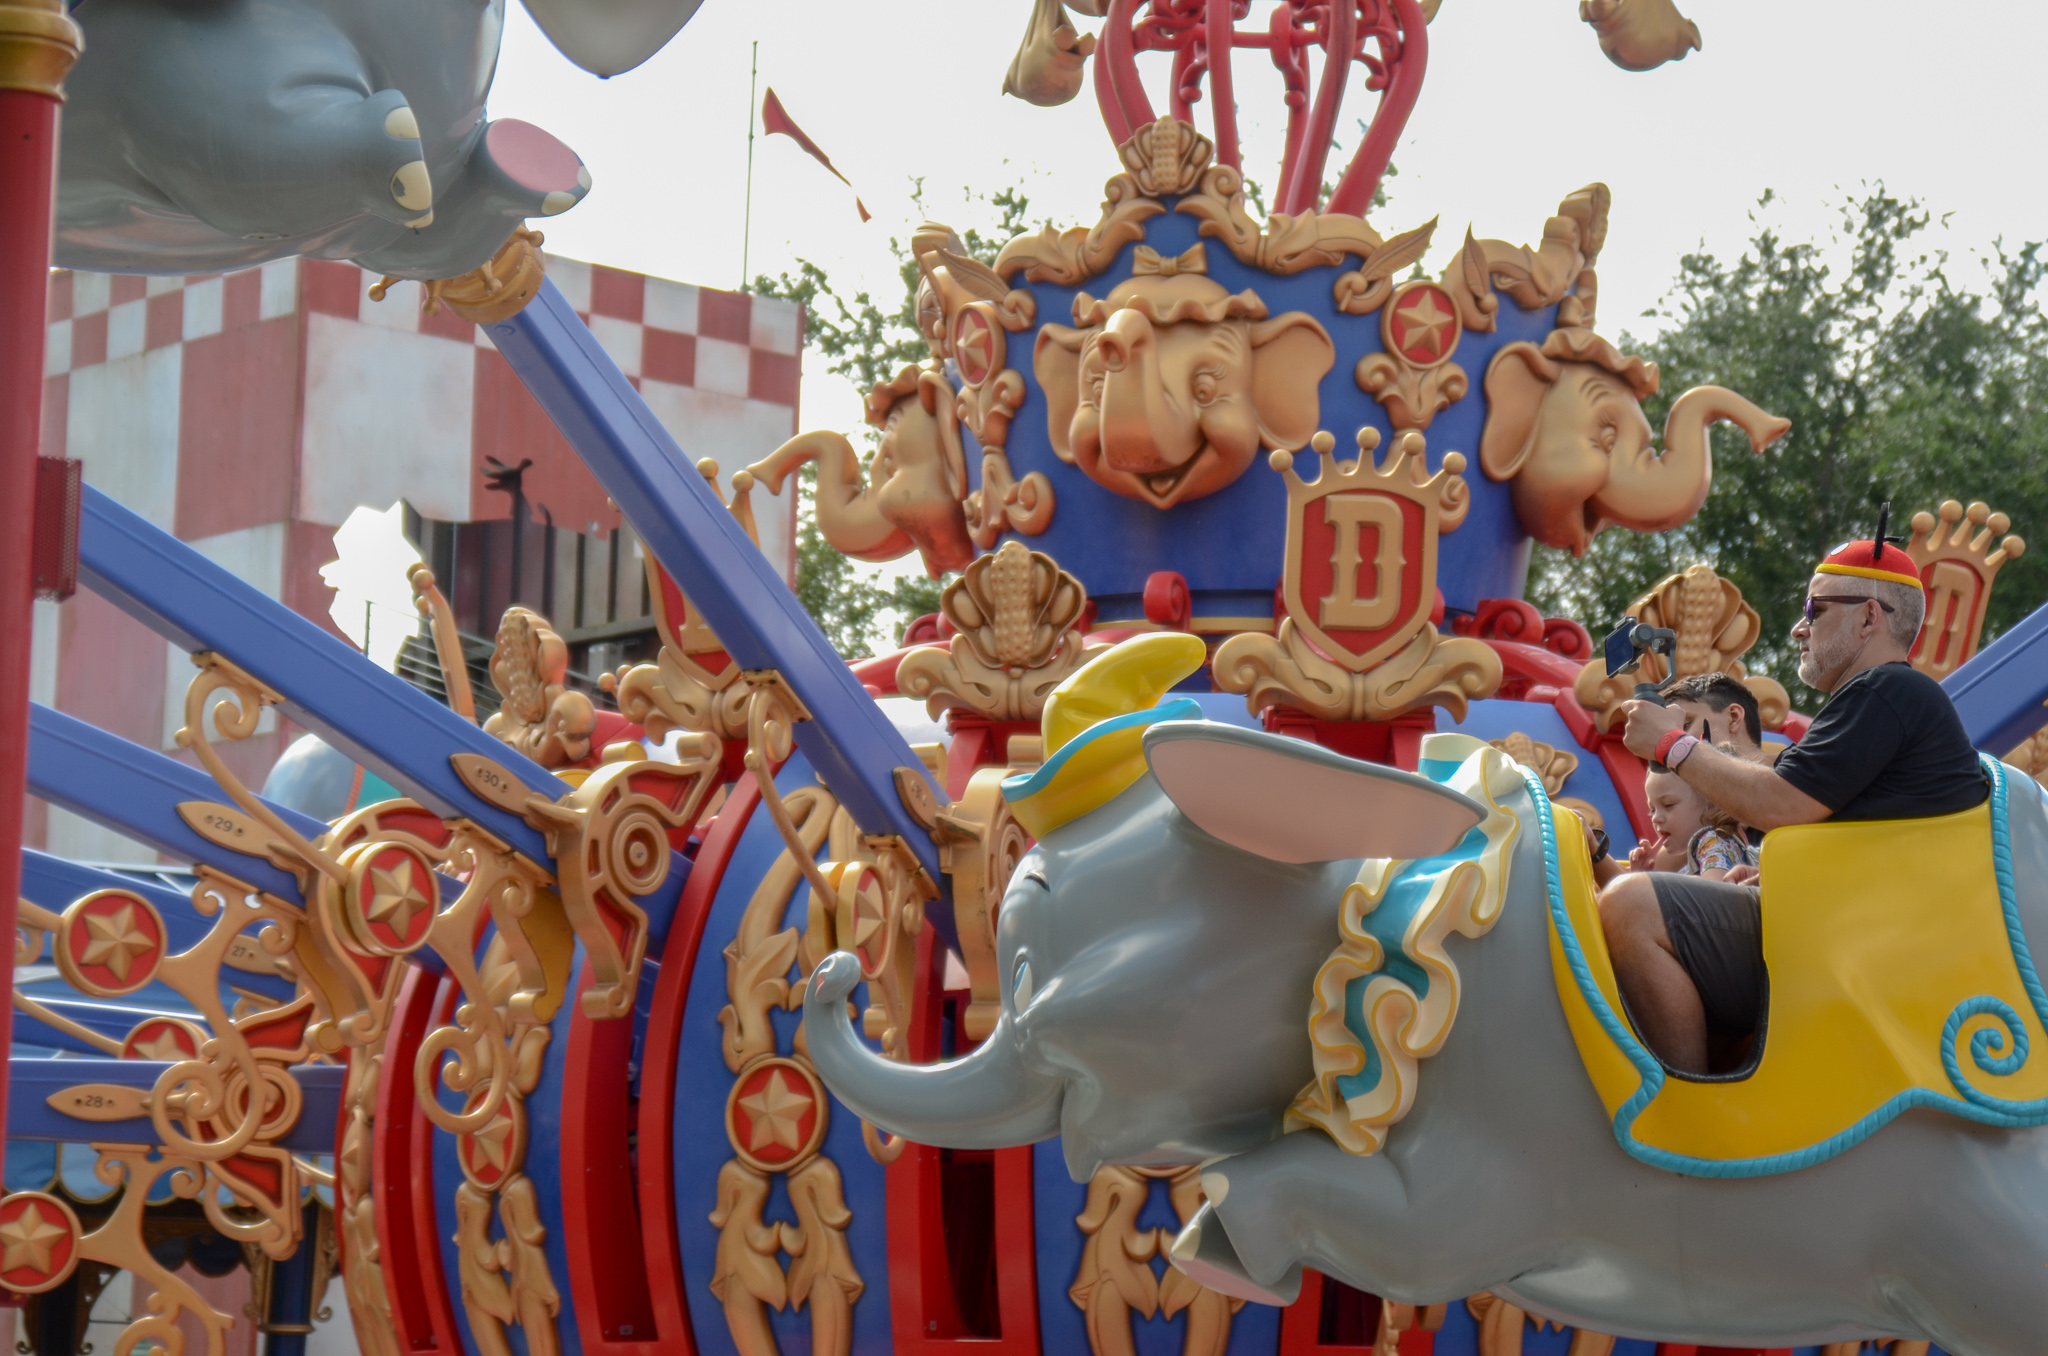 best attractions for toddler - dumbo- magic kingdom - she got guts